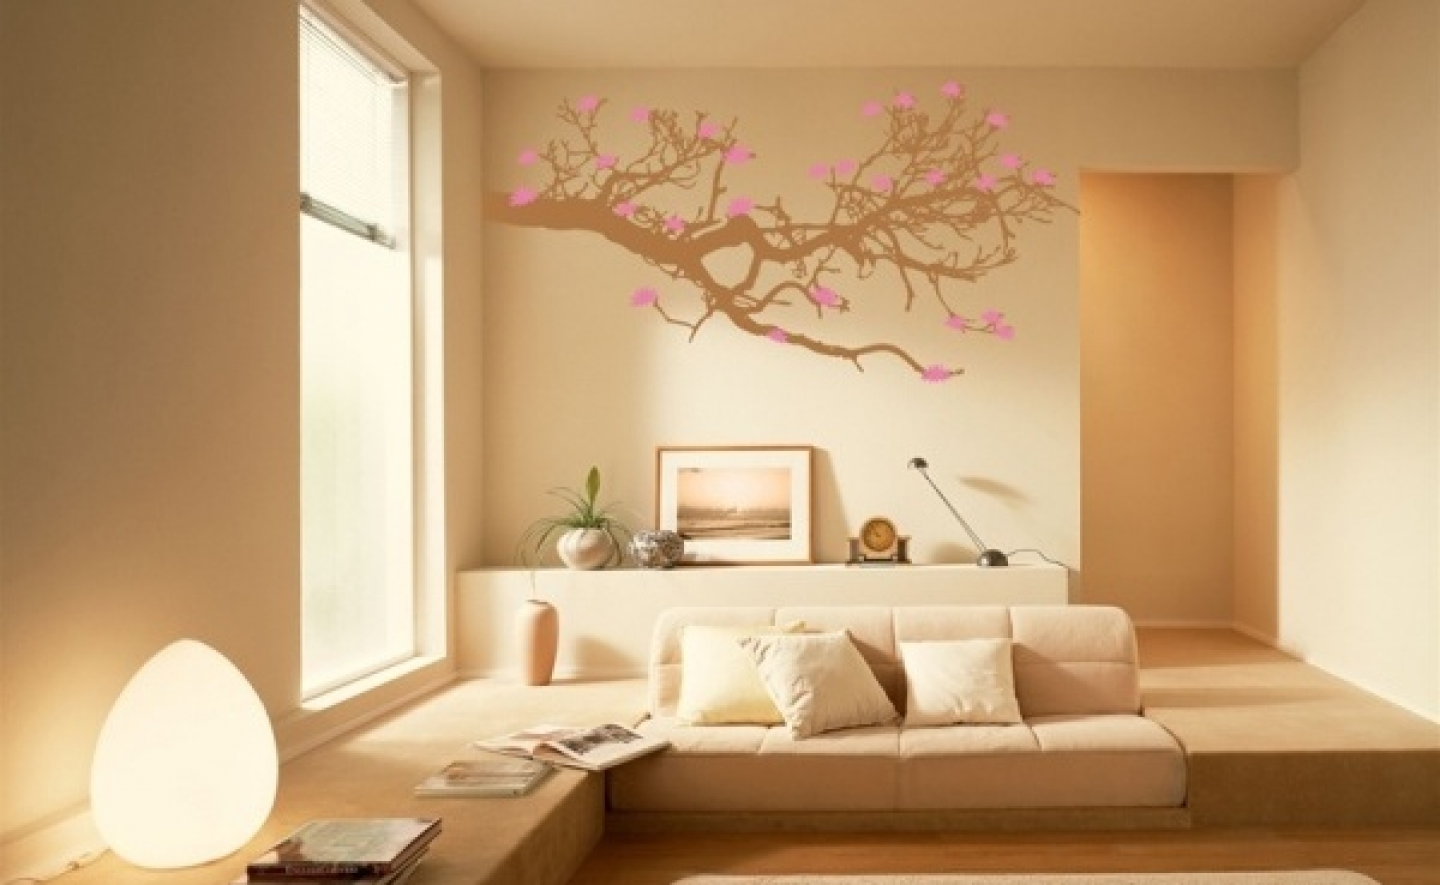 interior wall paint design ideas photo - 1